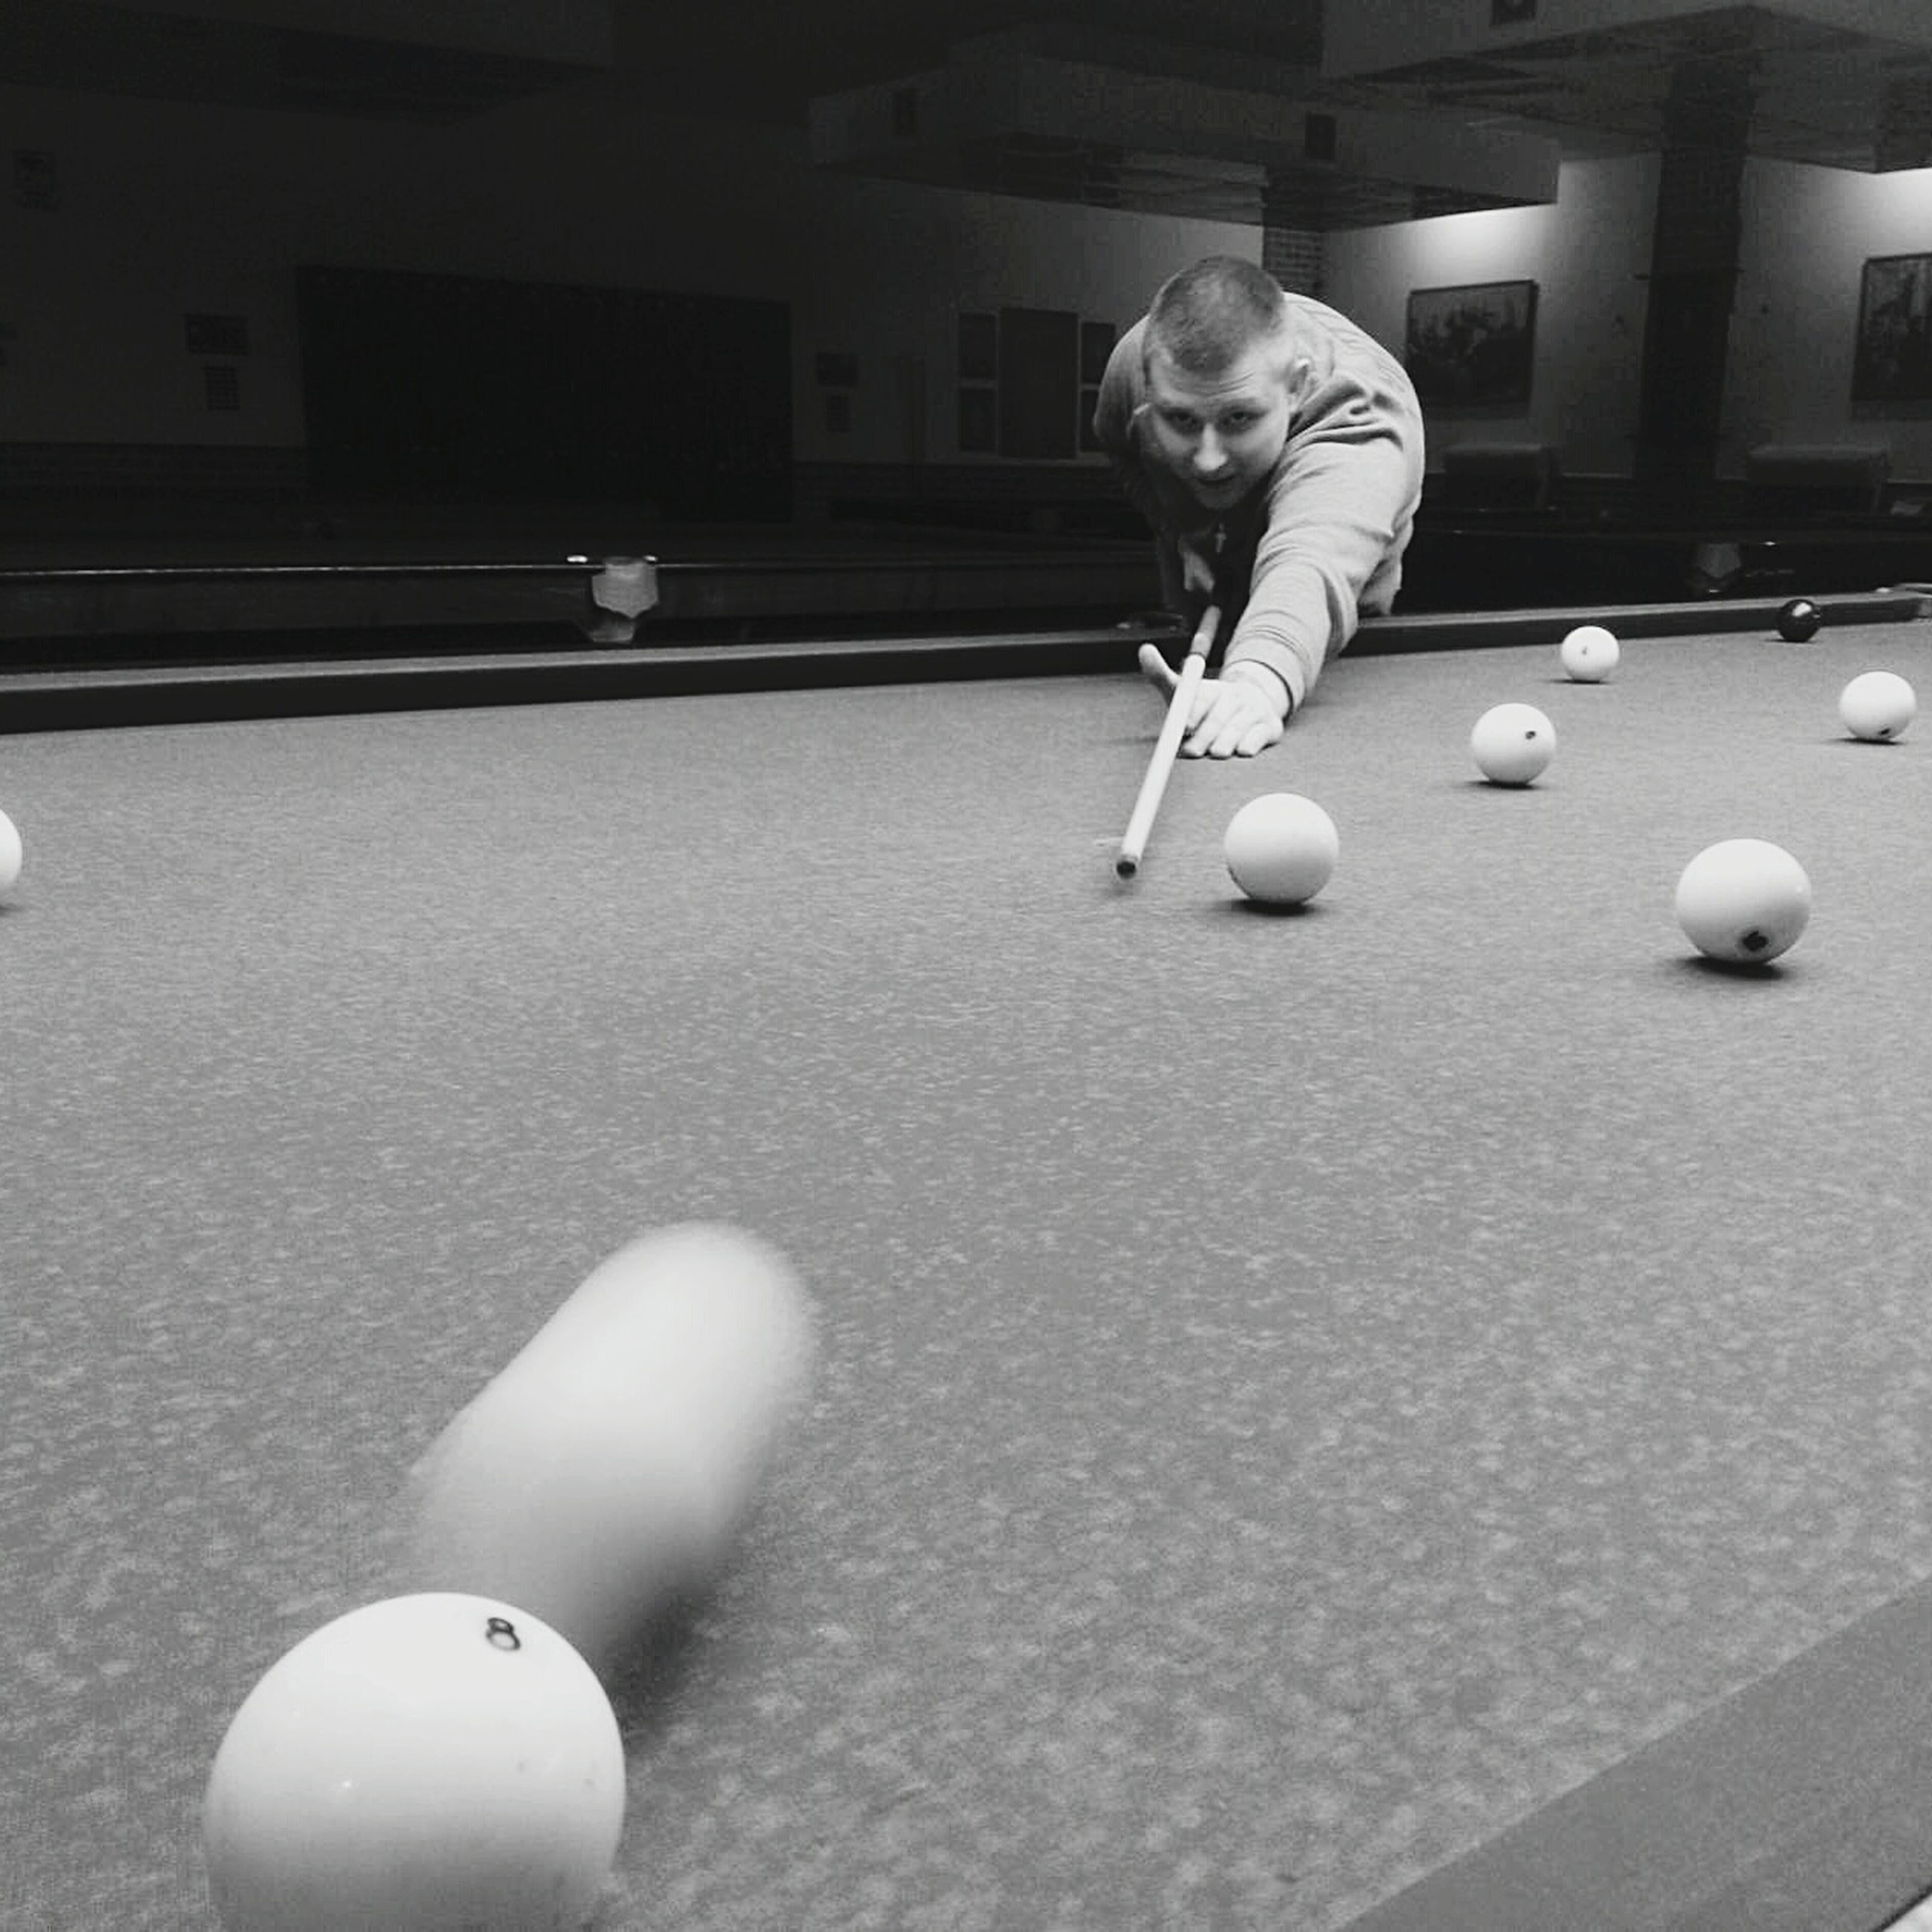 pool ball, pool table, pool - cue sport, playing, leisure activity, ball, sport, real people, snooker, pool cue, indoors, one person, lifestyles, leisure games, cue ball, concentration, snooker ball, pool hall, young adult, snooker and pool, day, people